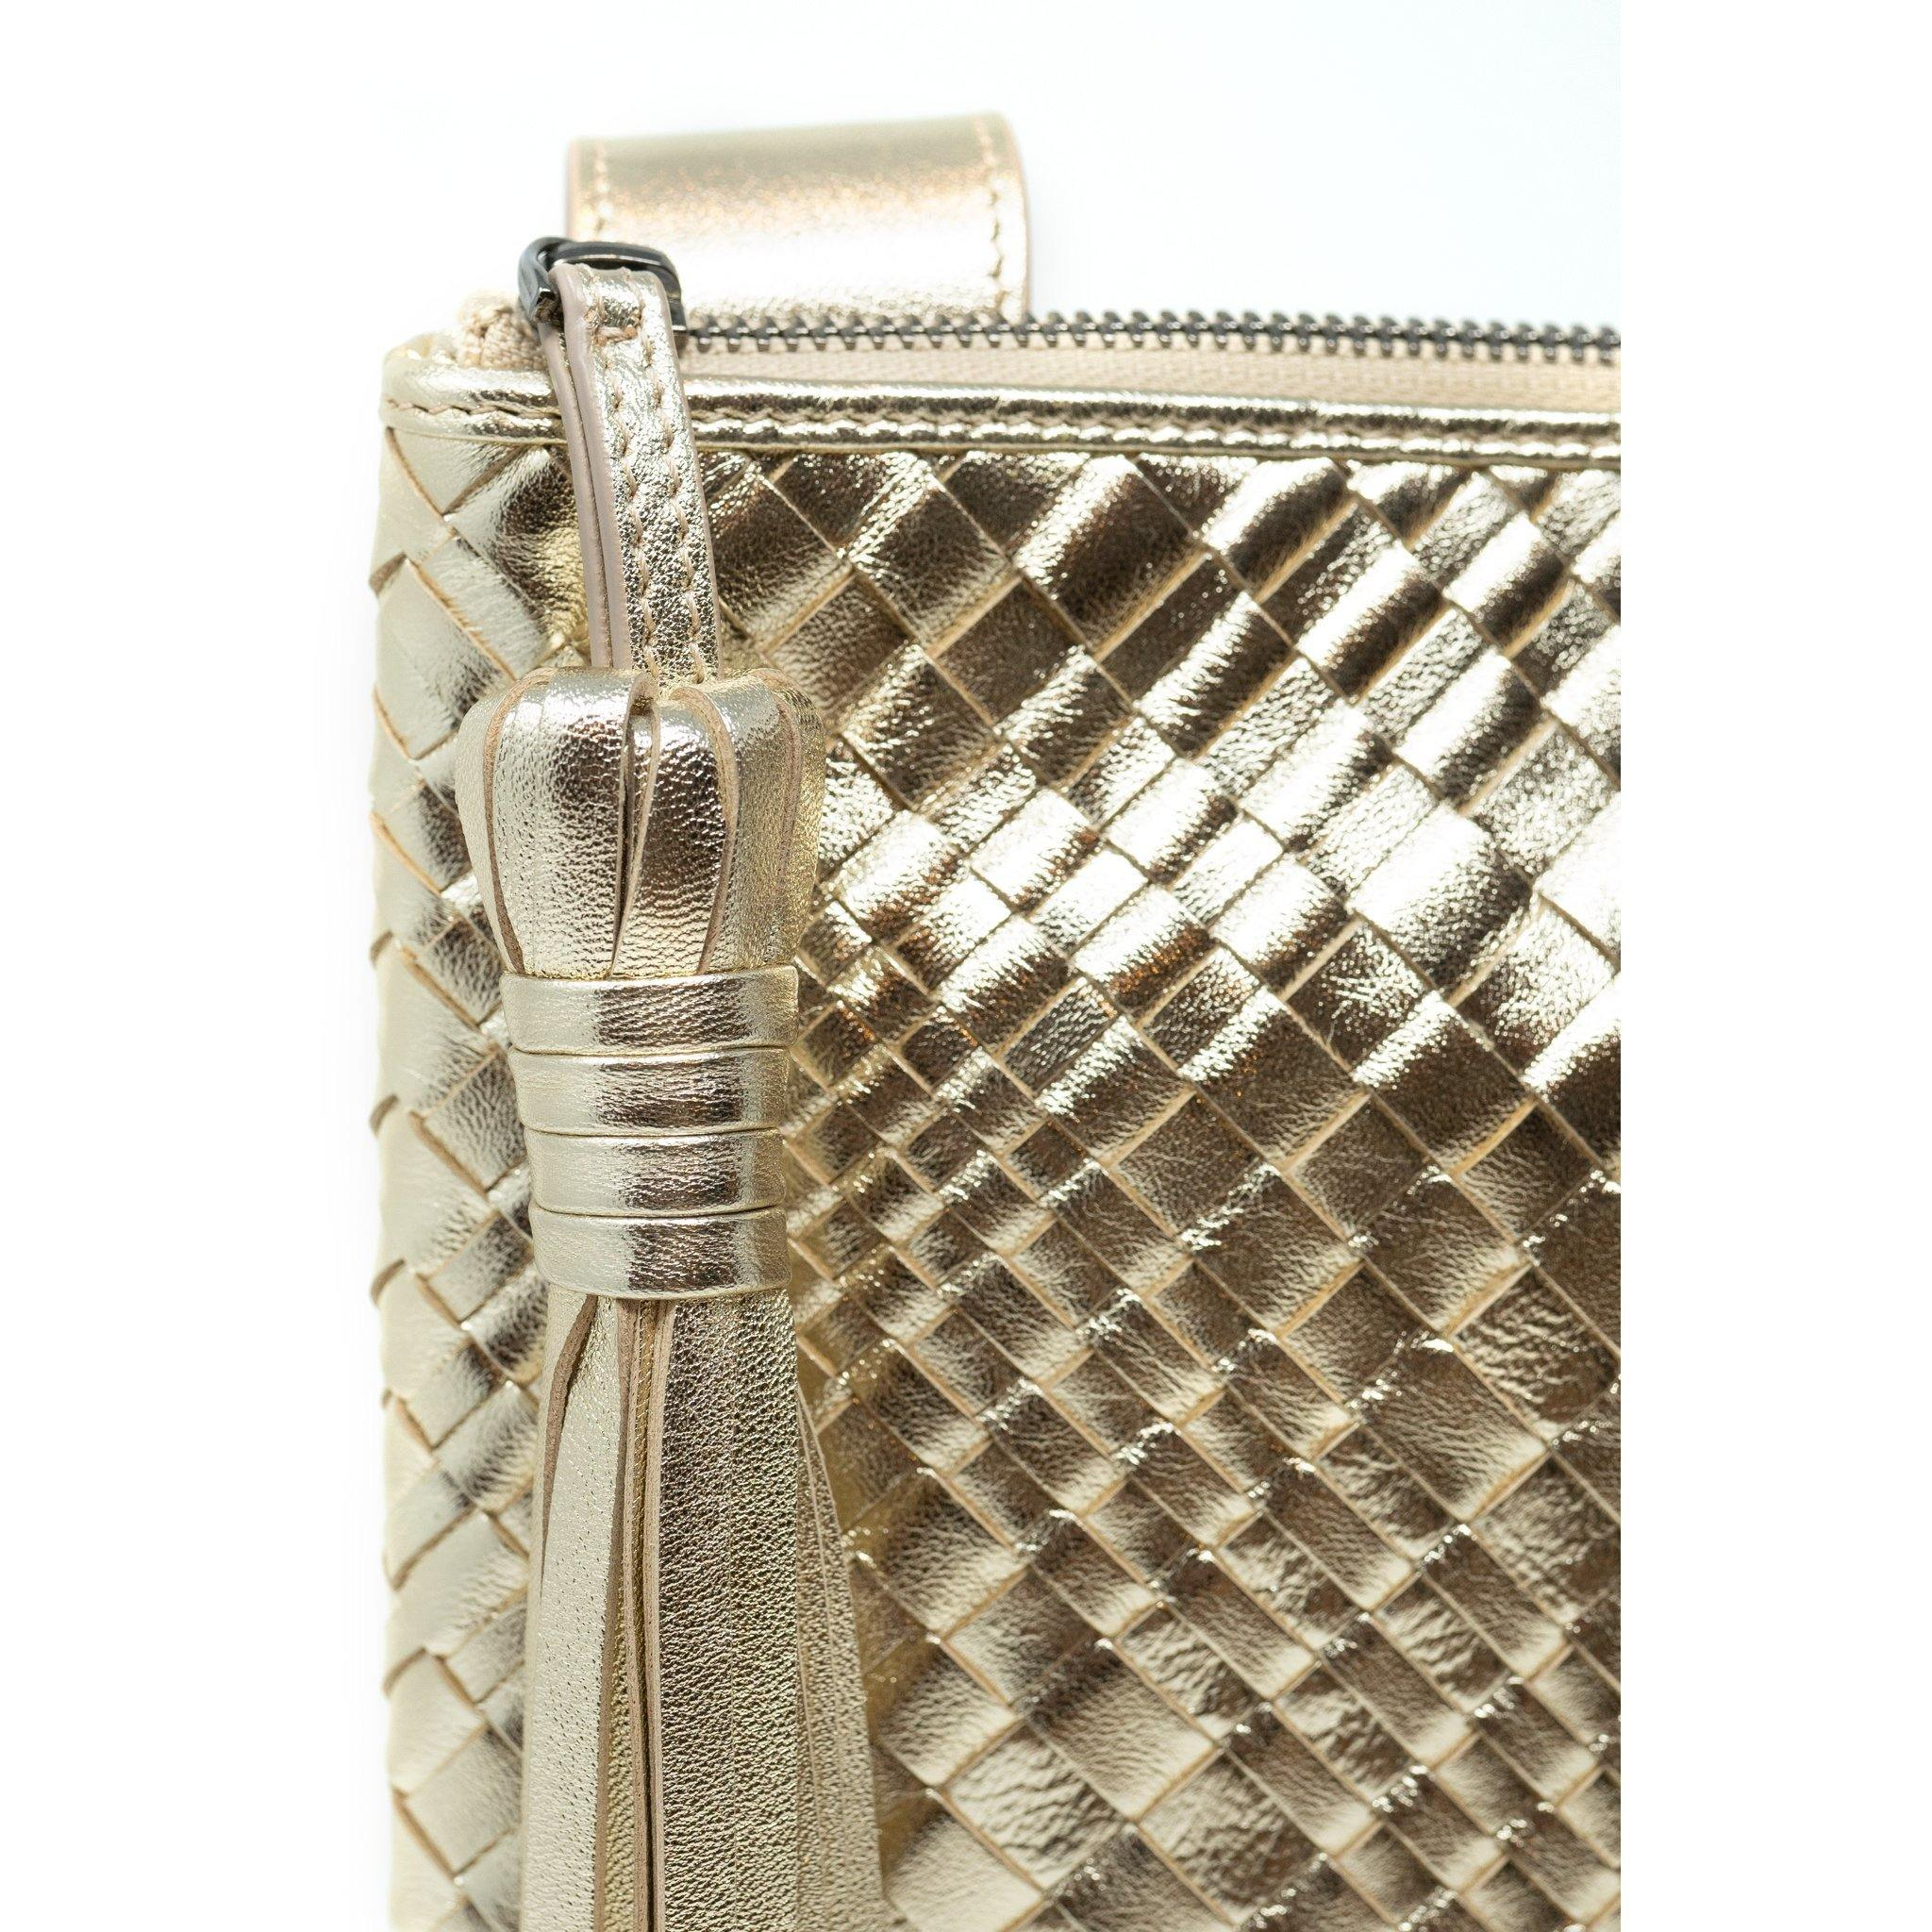 KIM Crossbody Women Bag Intrecciato Optical Gold Laminated - Jennifer Tattanelli